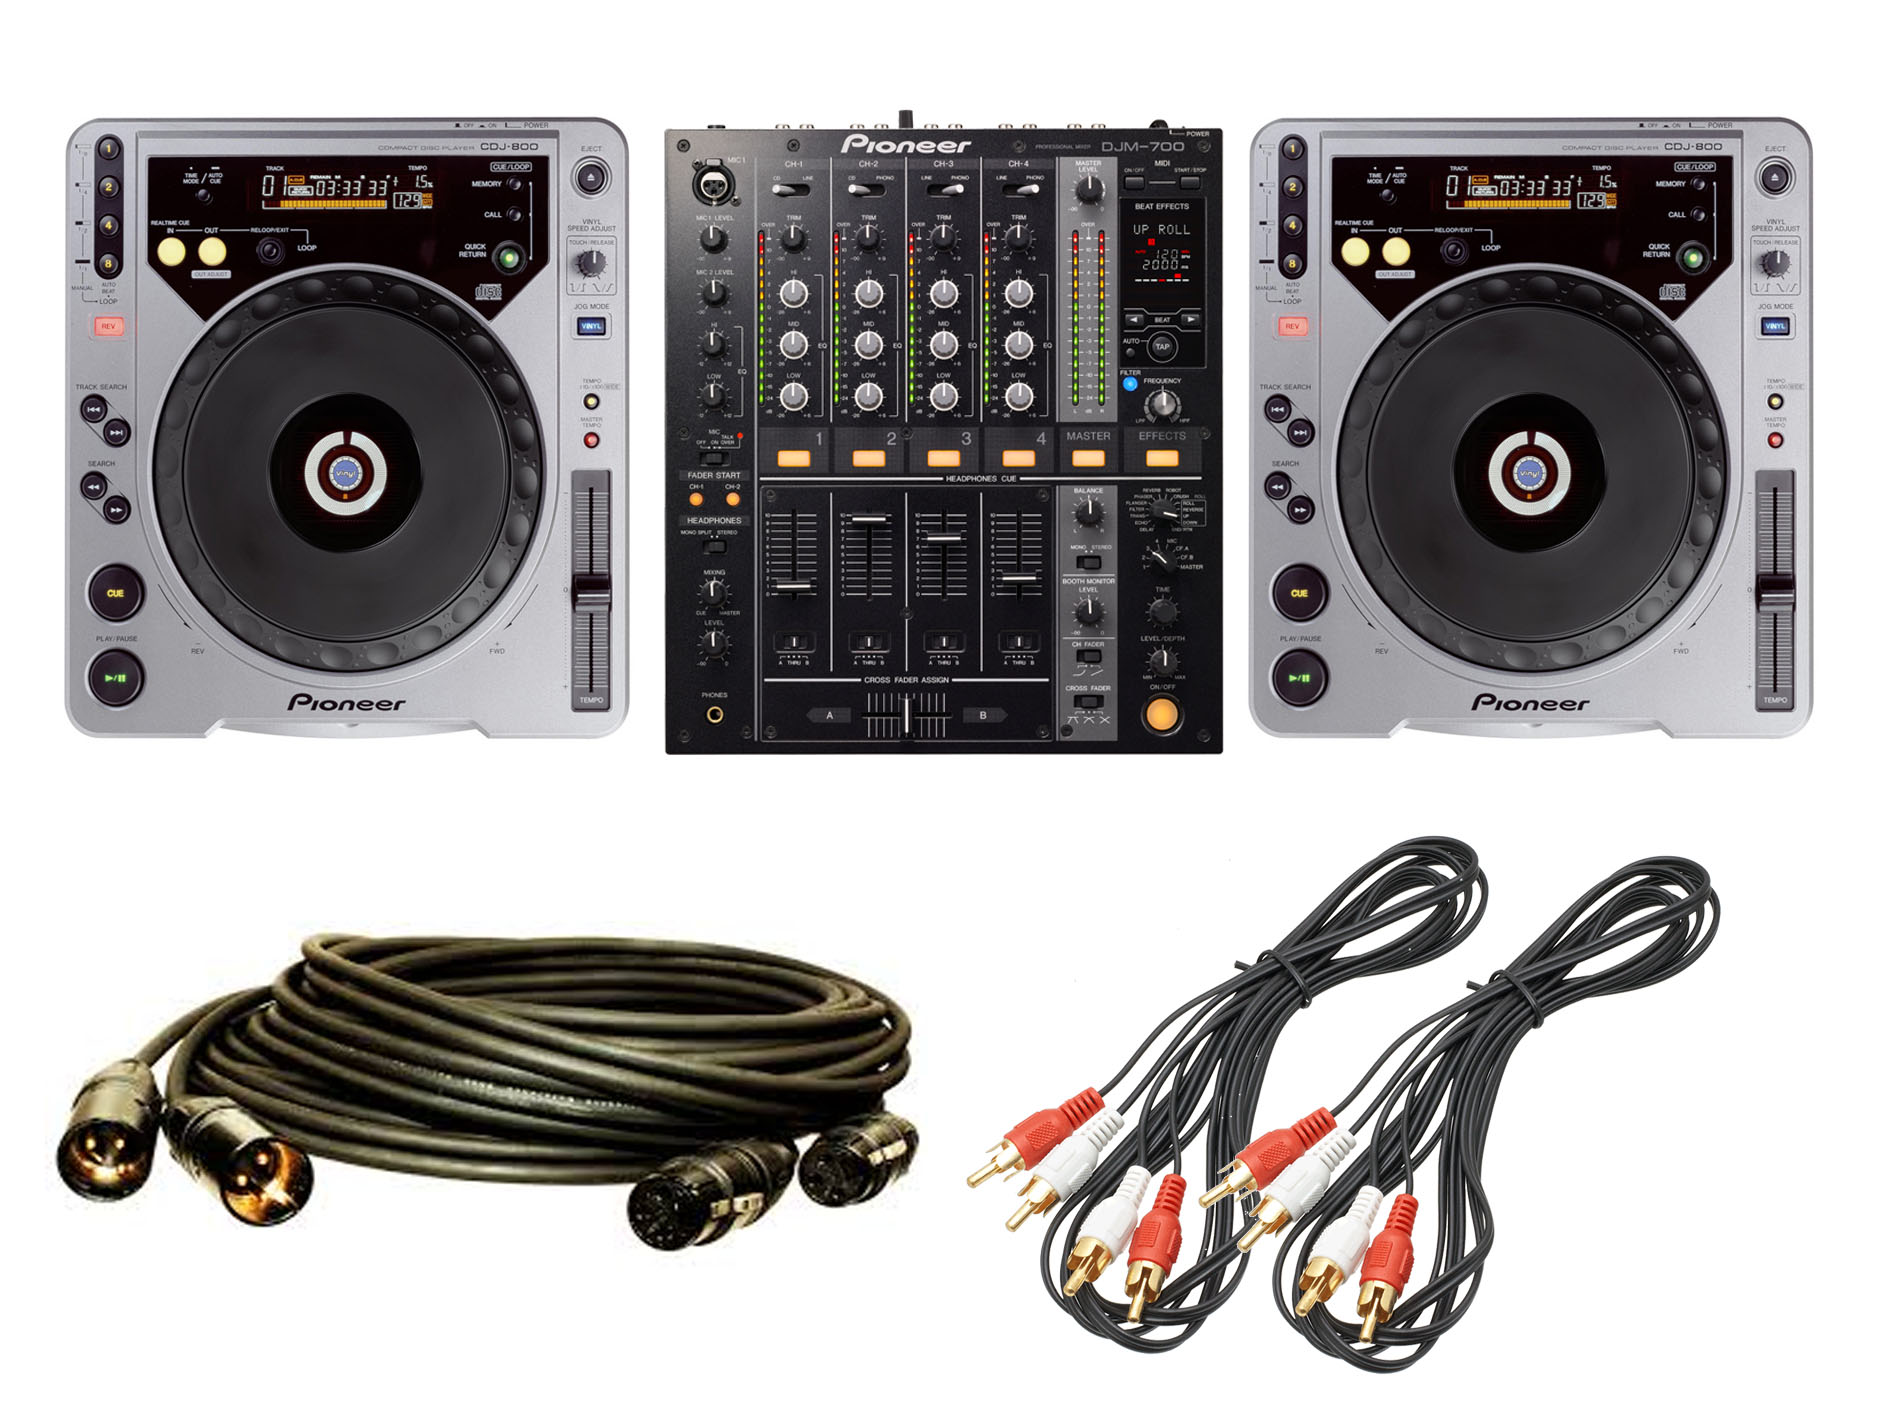 cdjs and mixer